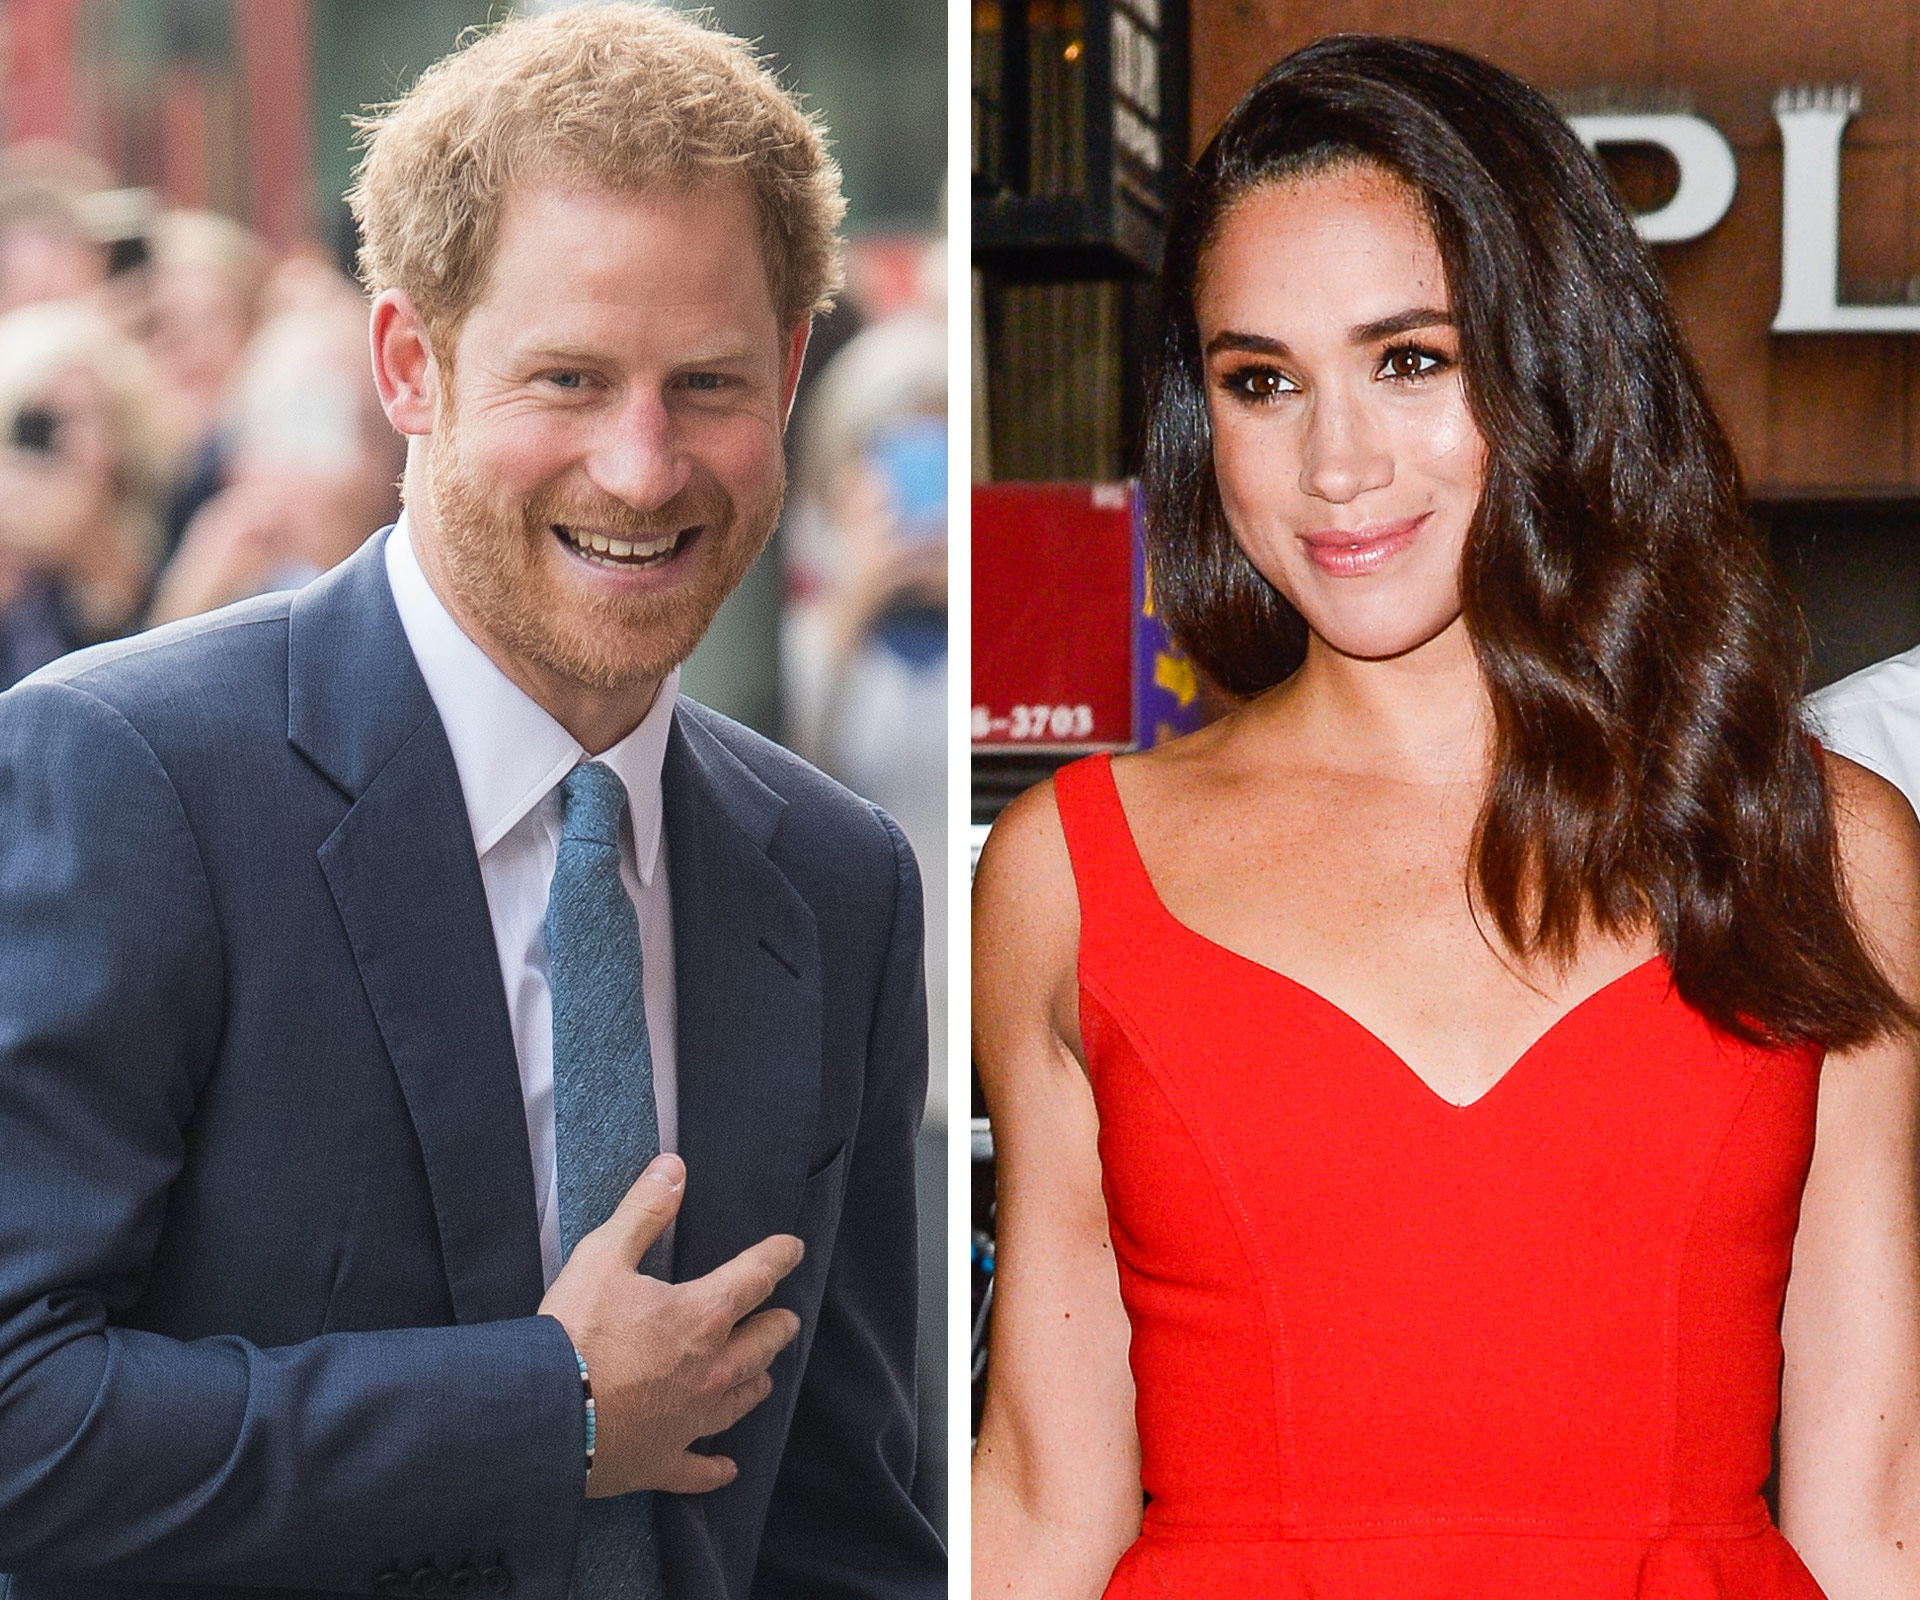 Prince Harry Is Dating Suits Actress Meghan Markle